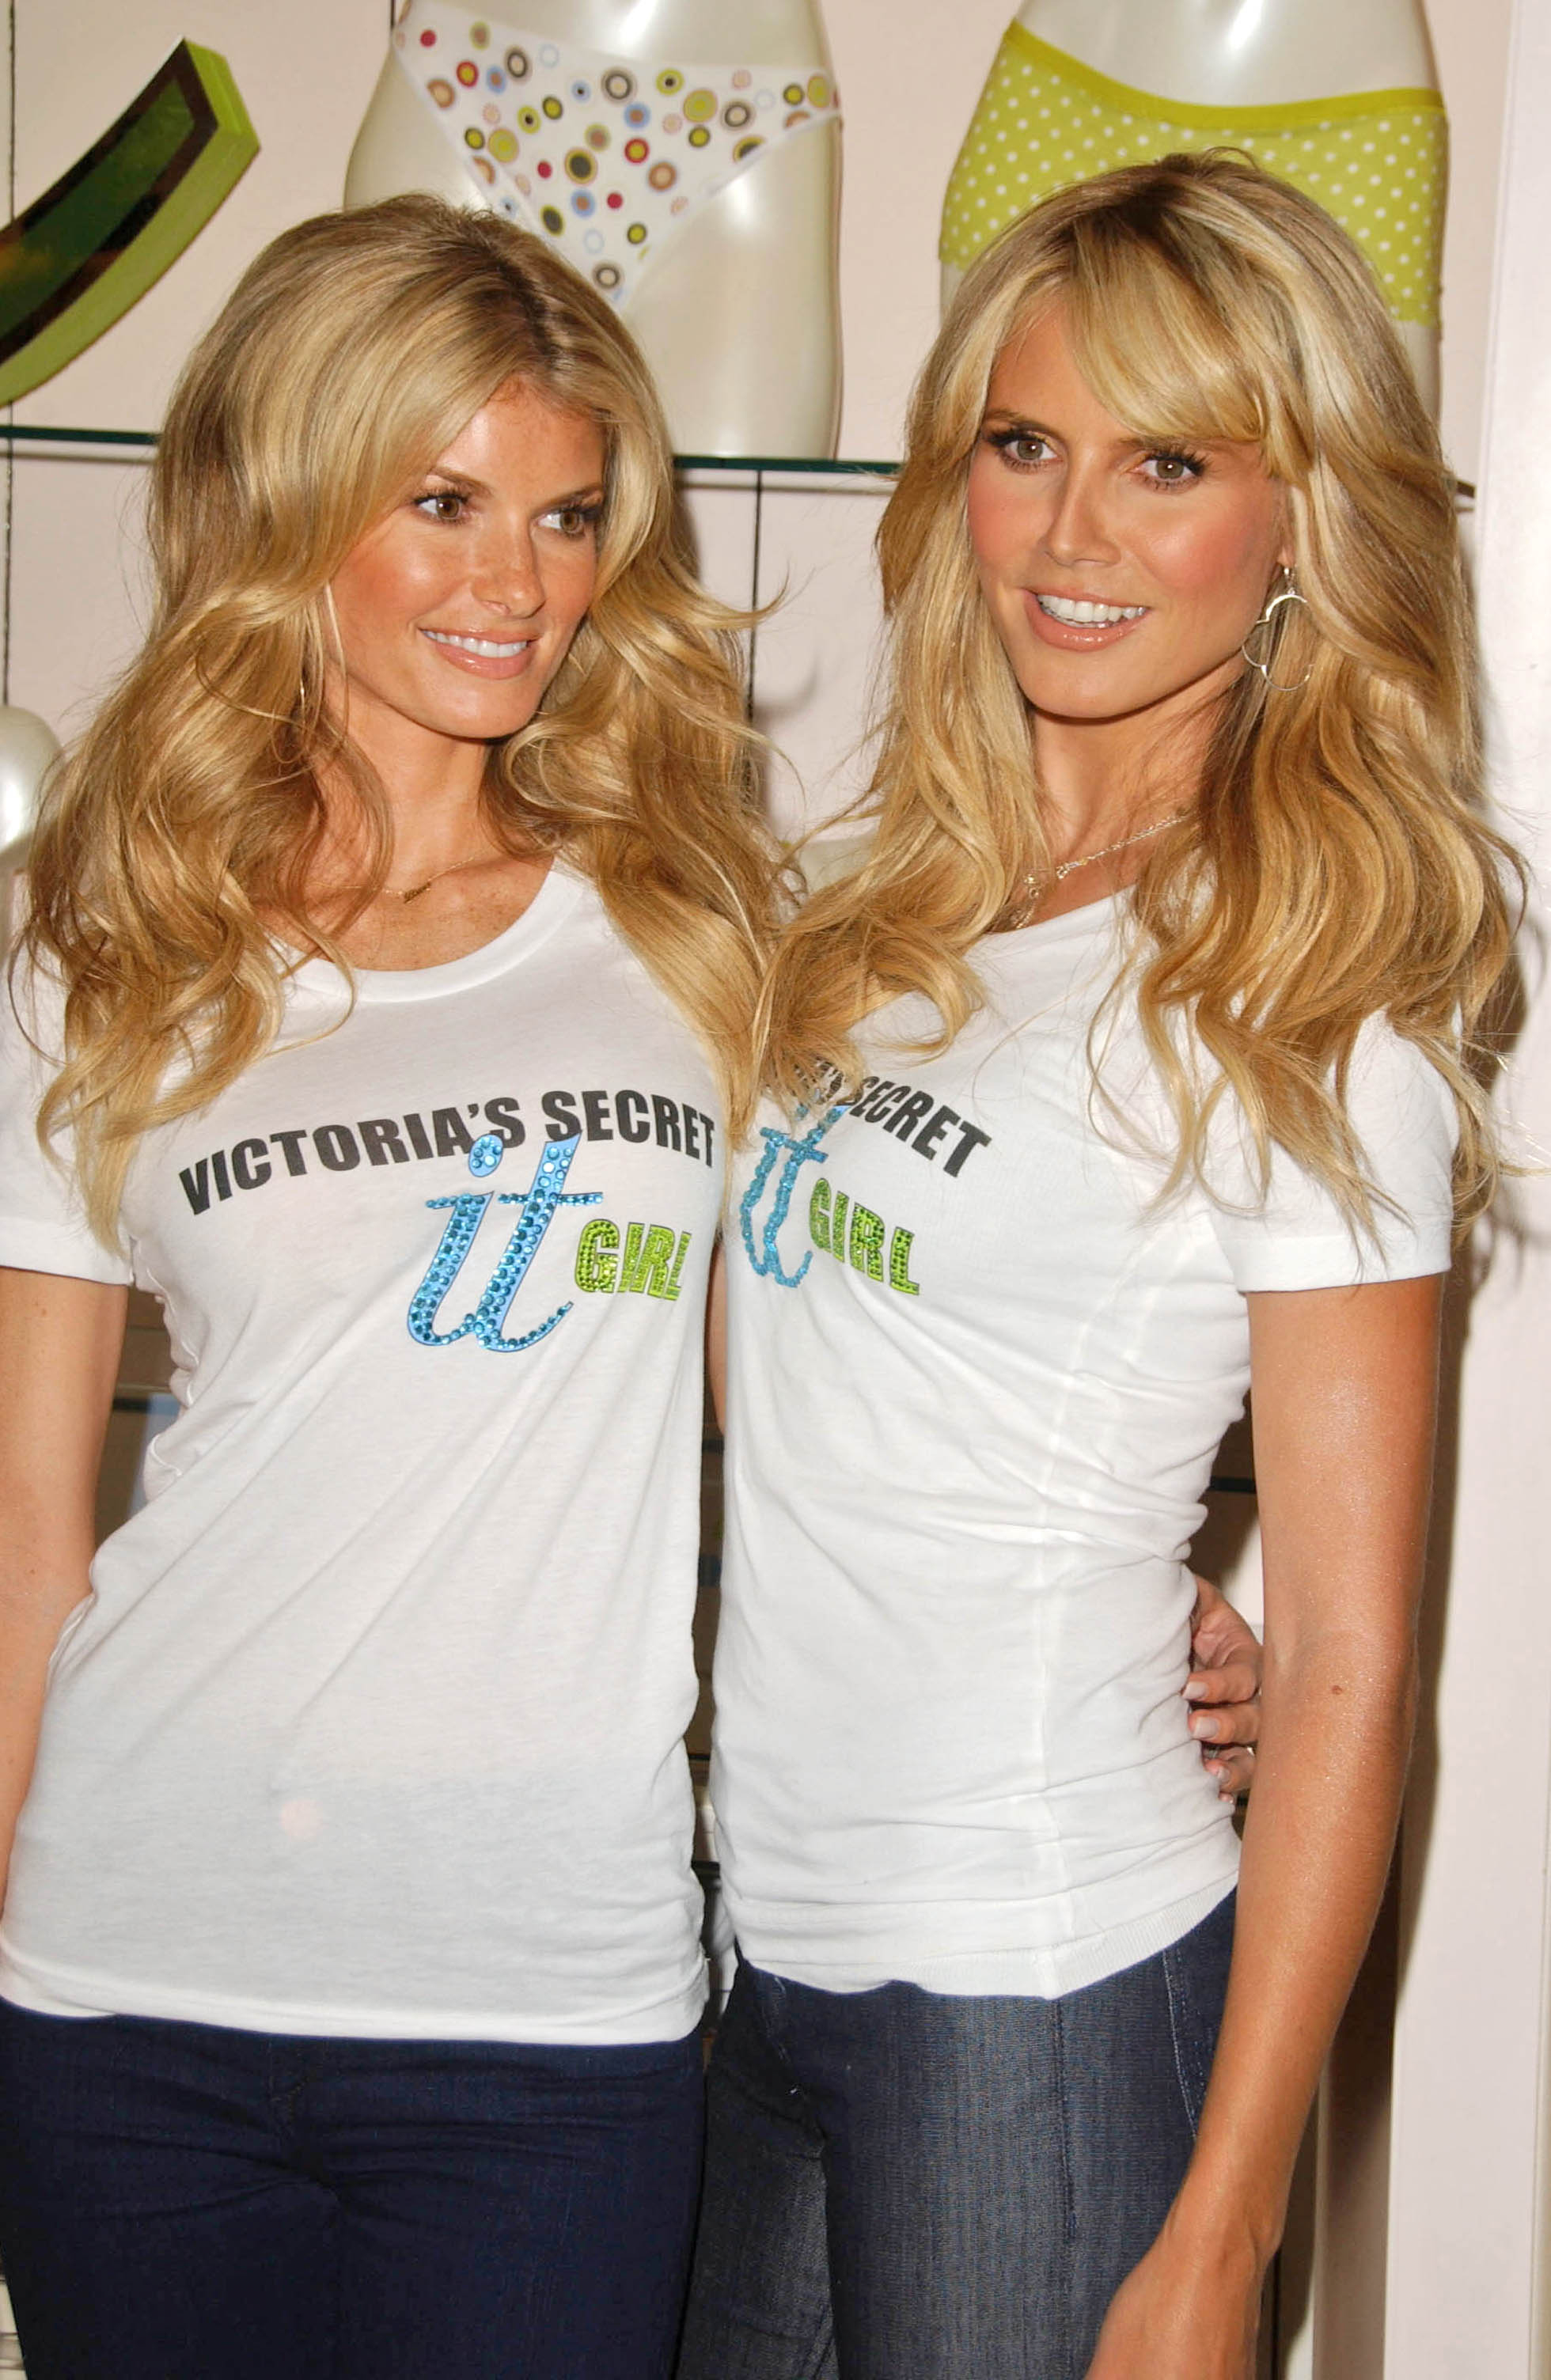 Famous Supermodels Marisa Miller And Heidi Klum Modeling In Los Angeles California Modeling For Victoria's Secret Body By Victoria Full-Coverage Uplift Bra.